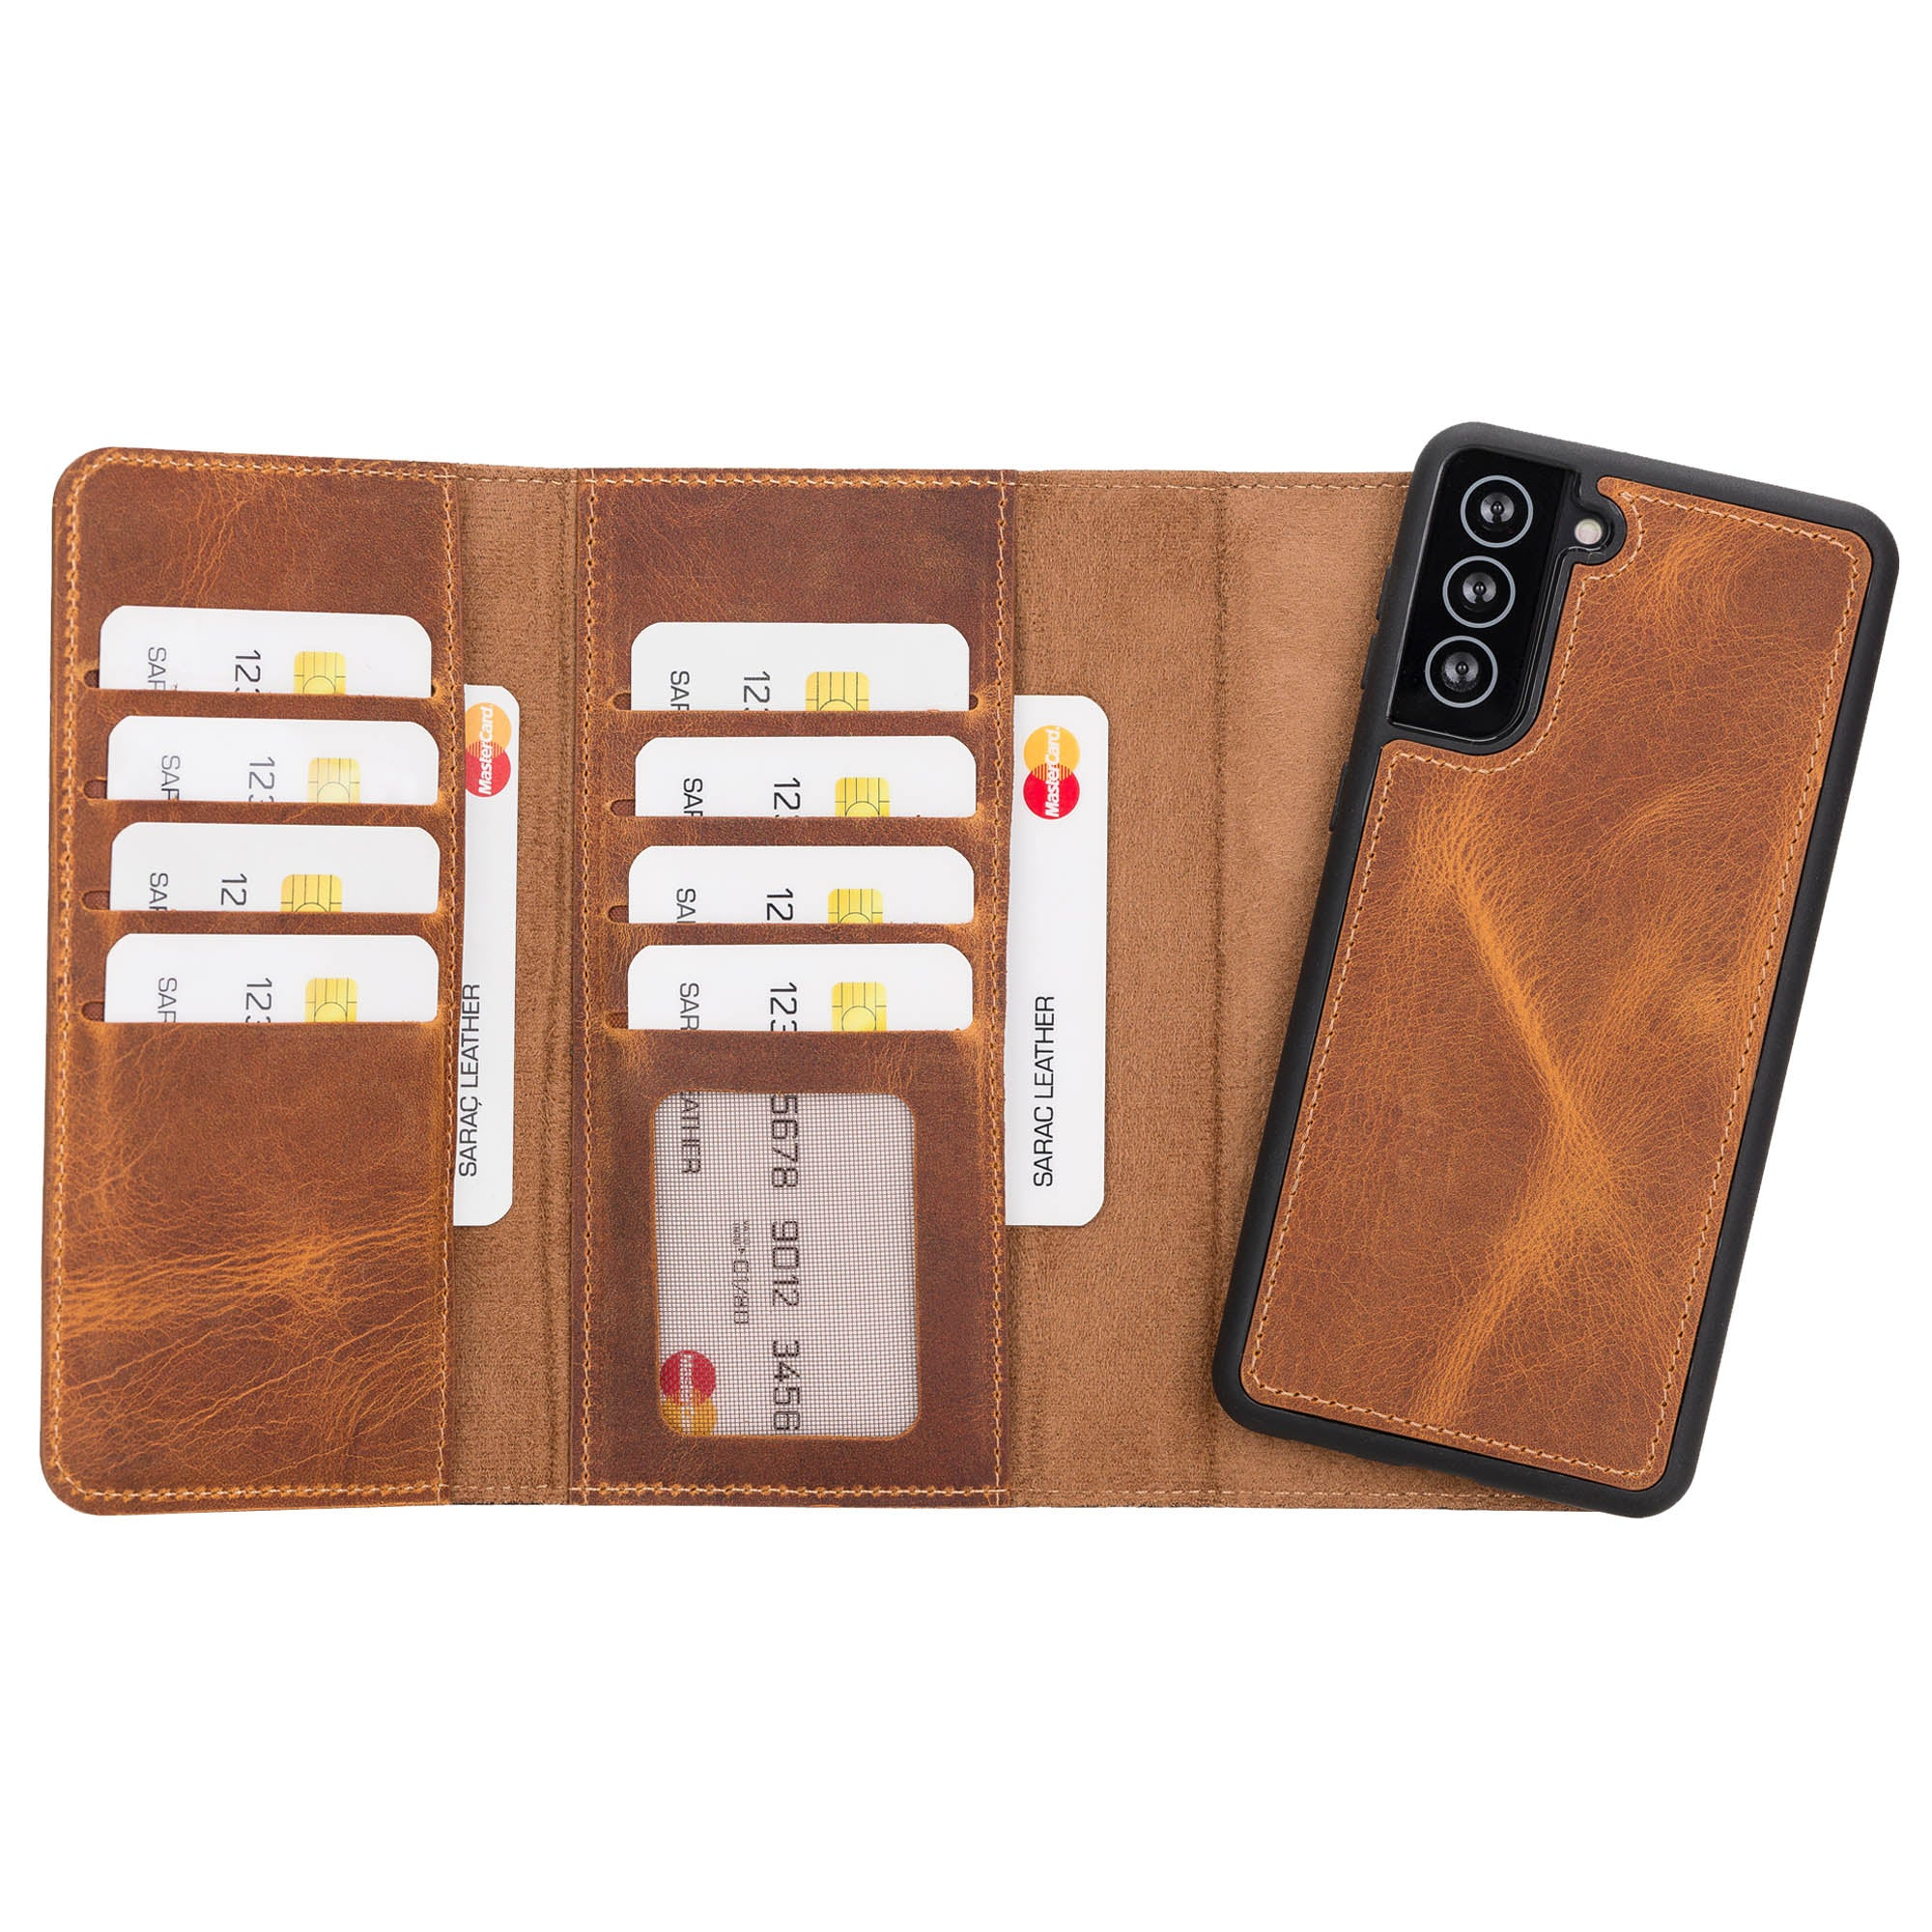 "Santa Magnetic Detachable Leather Wallet Case for Samsung Galaxy S21 Plus 5G (6.7"") - TAN"